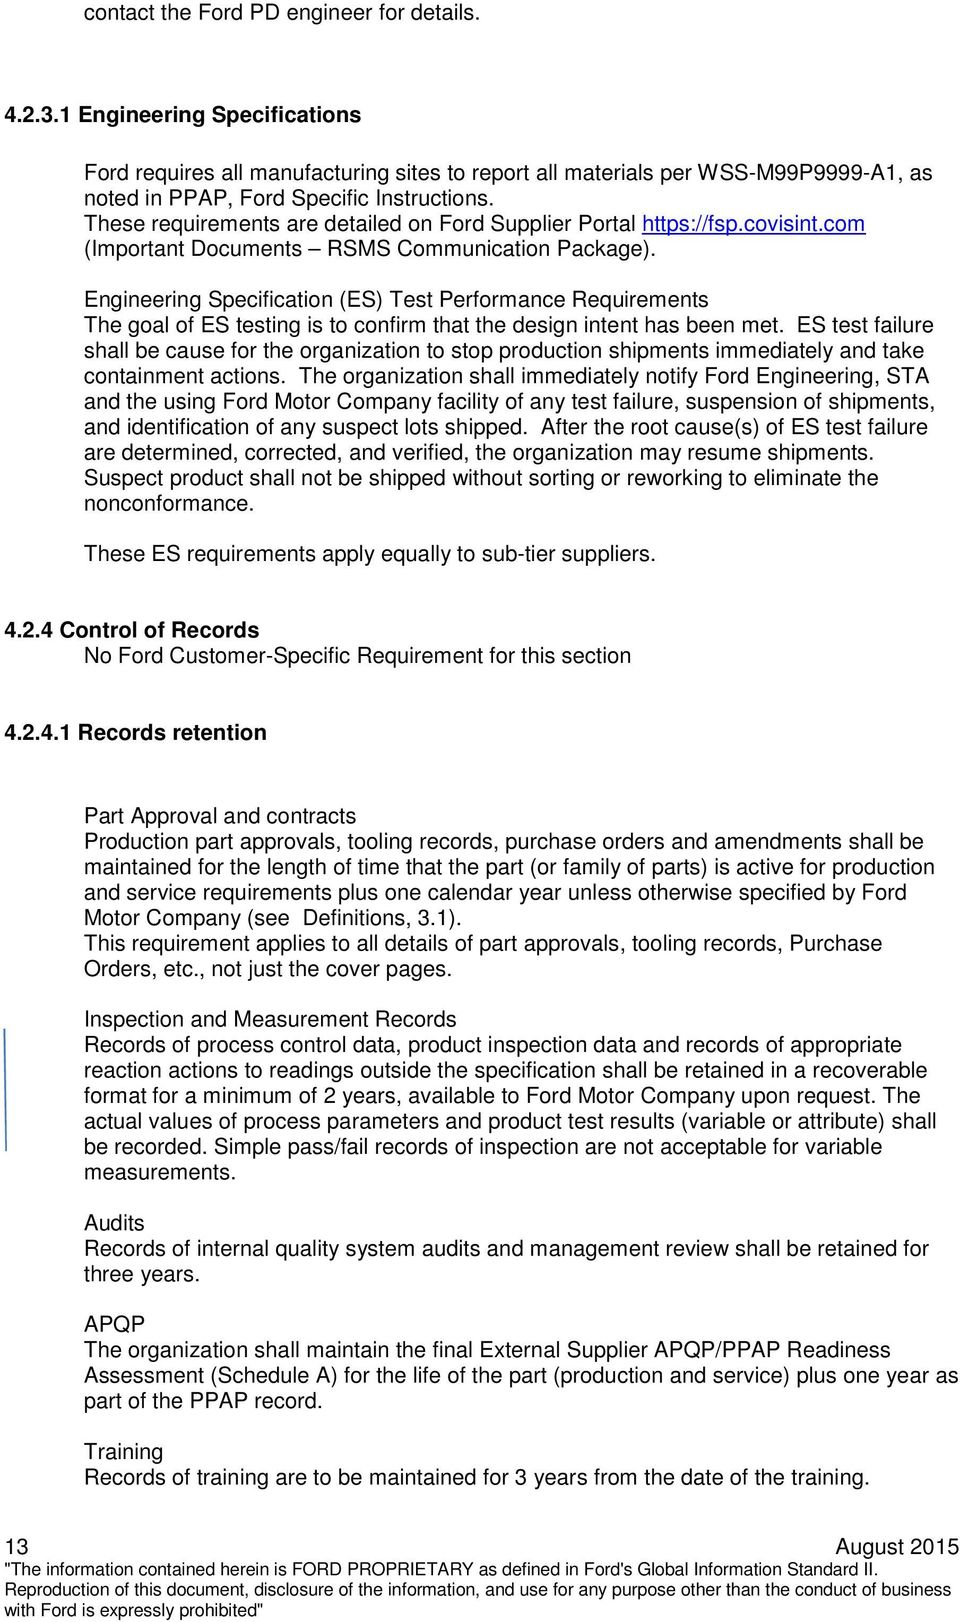 real estate appraiser cisco voip engineer cover letter commercial real